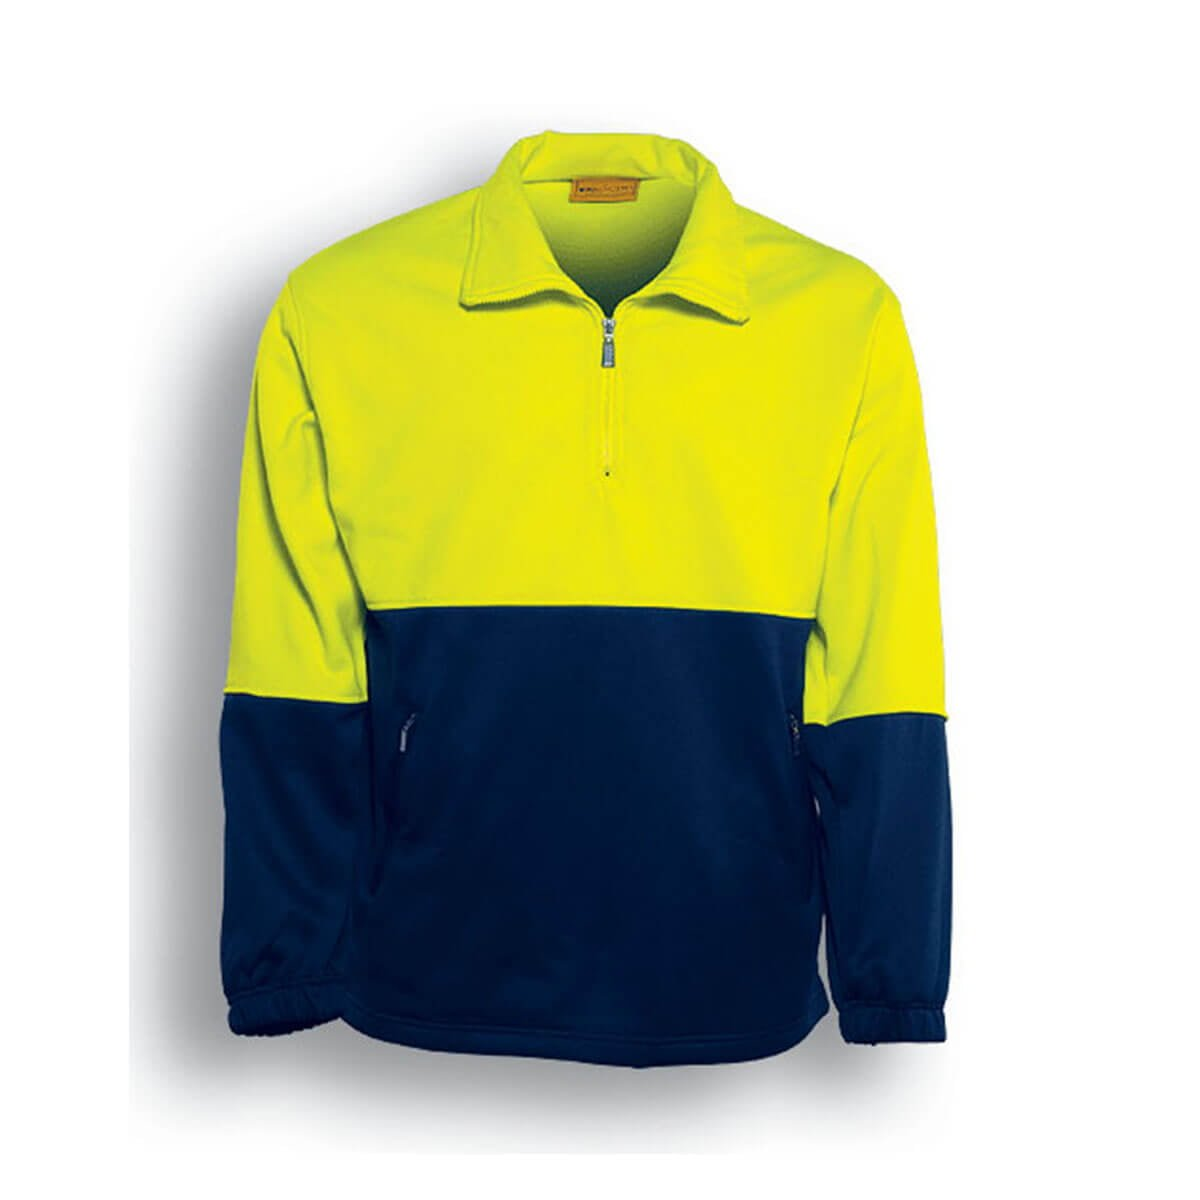 HI-VIS 1/2 ZIP FLEECE-Lime / Navy